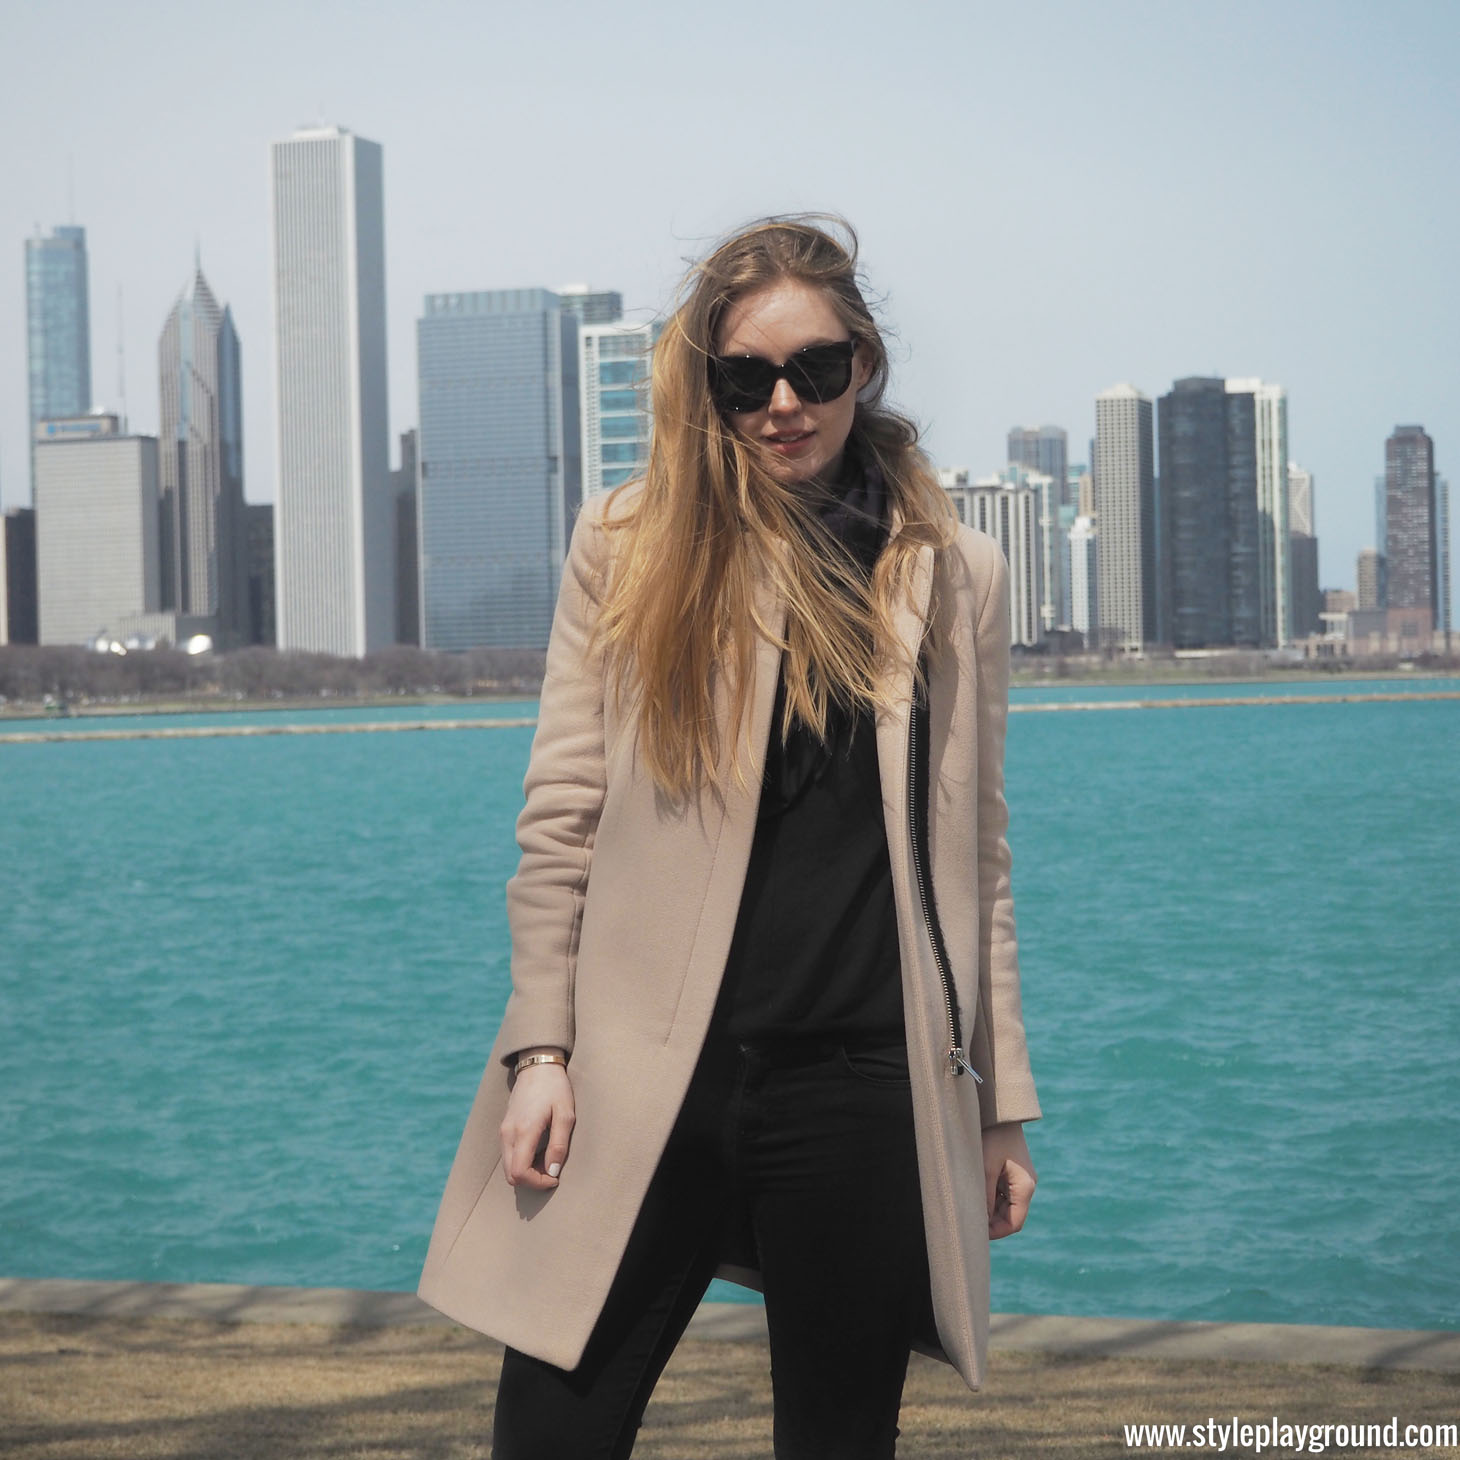 Chicago photo diary